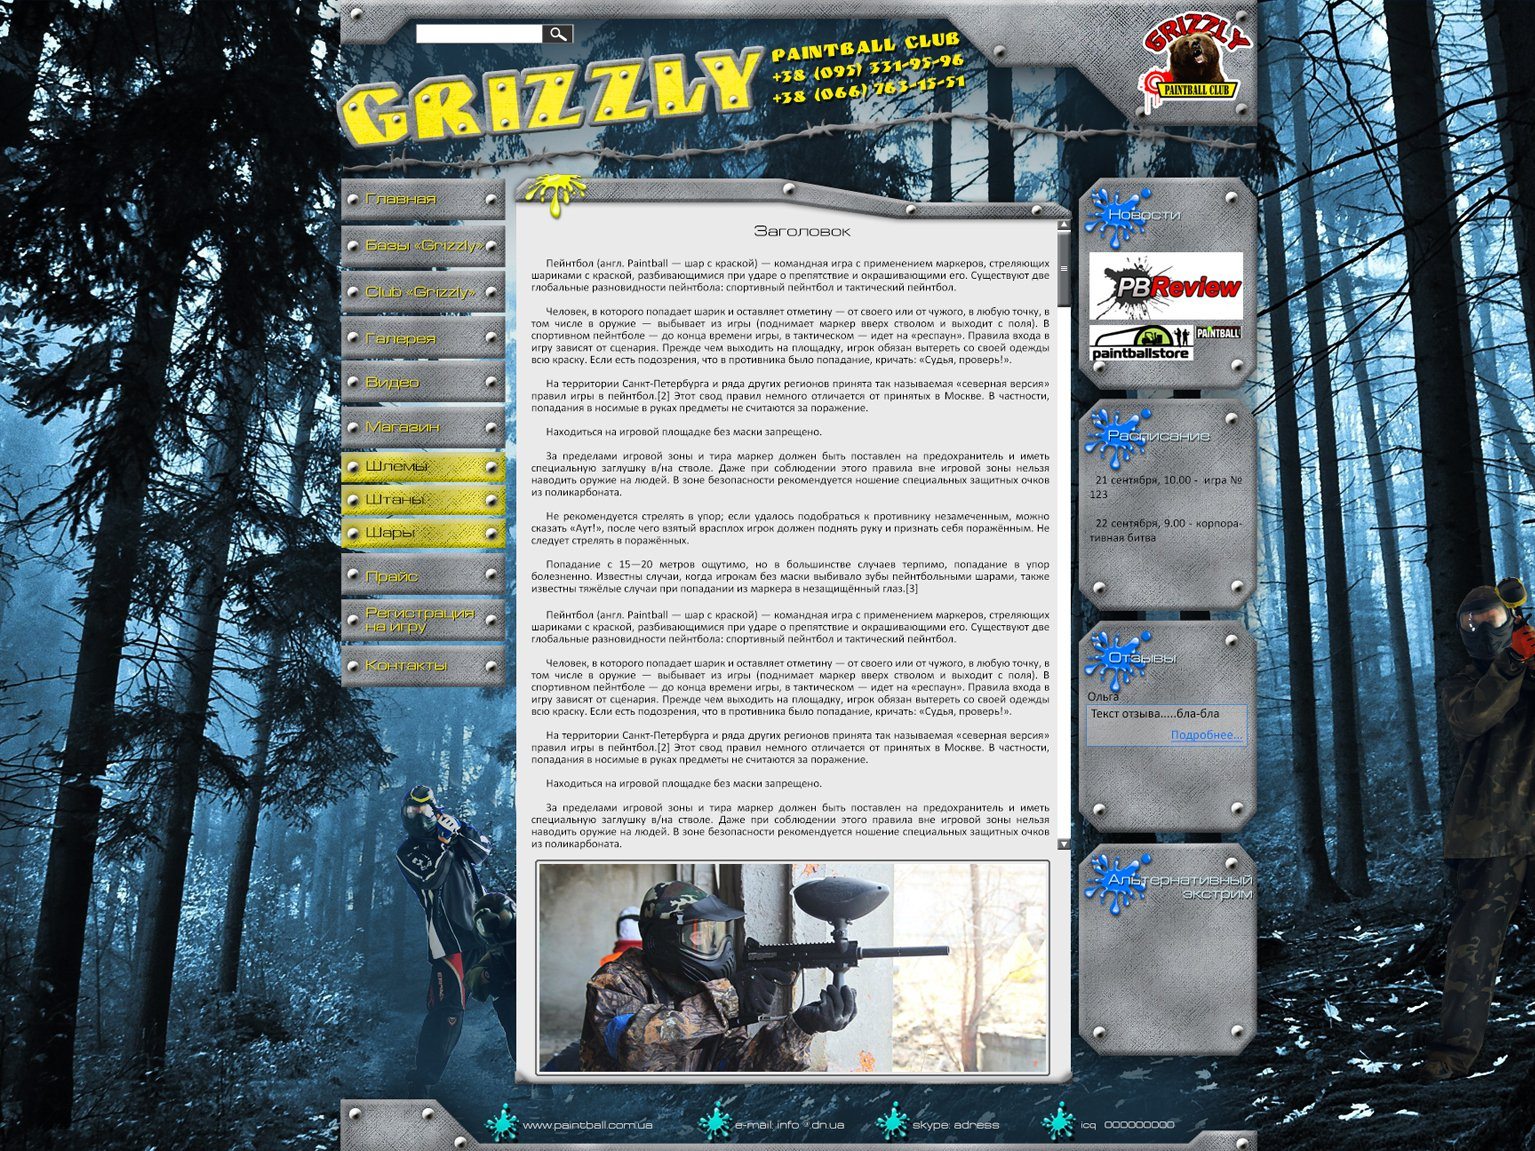 http://grizzly-paintball.com